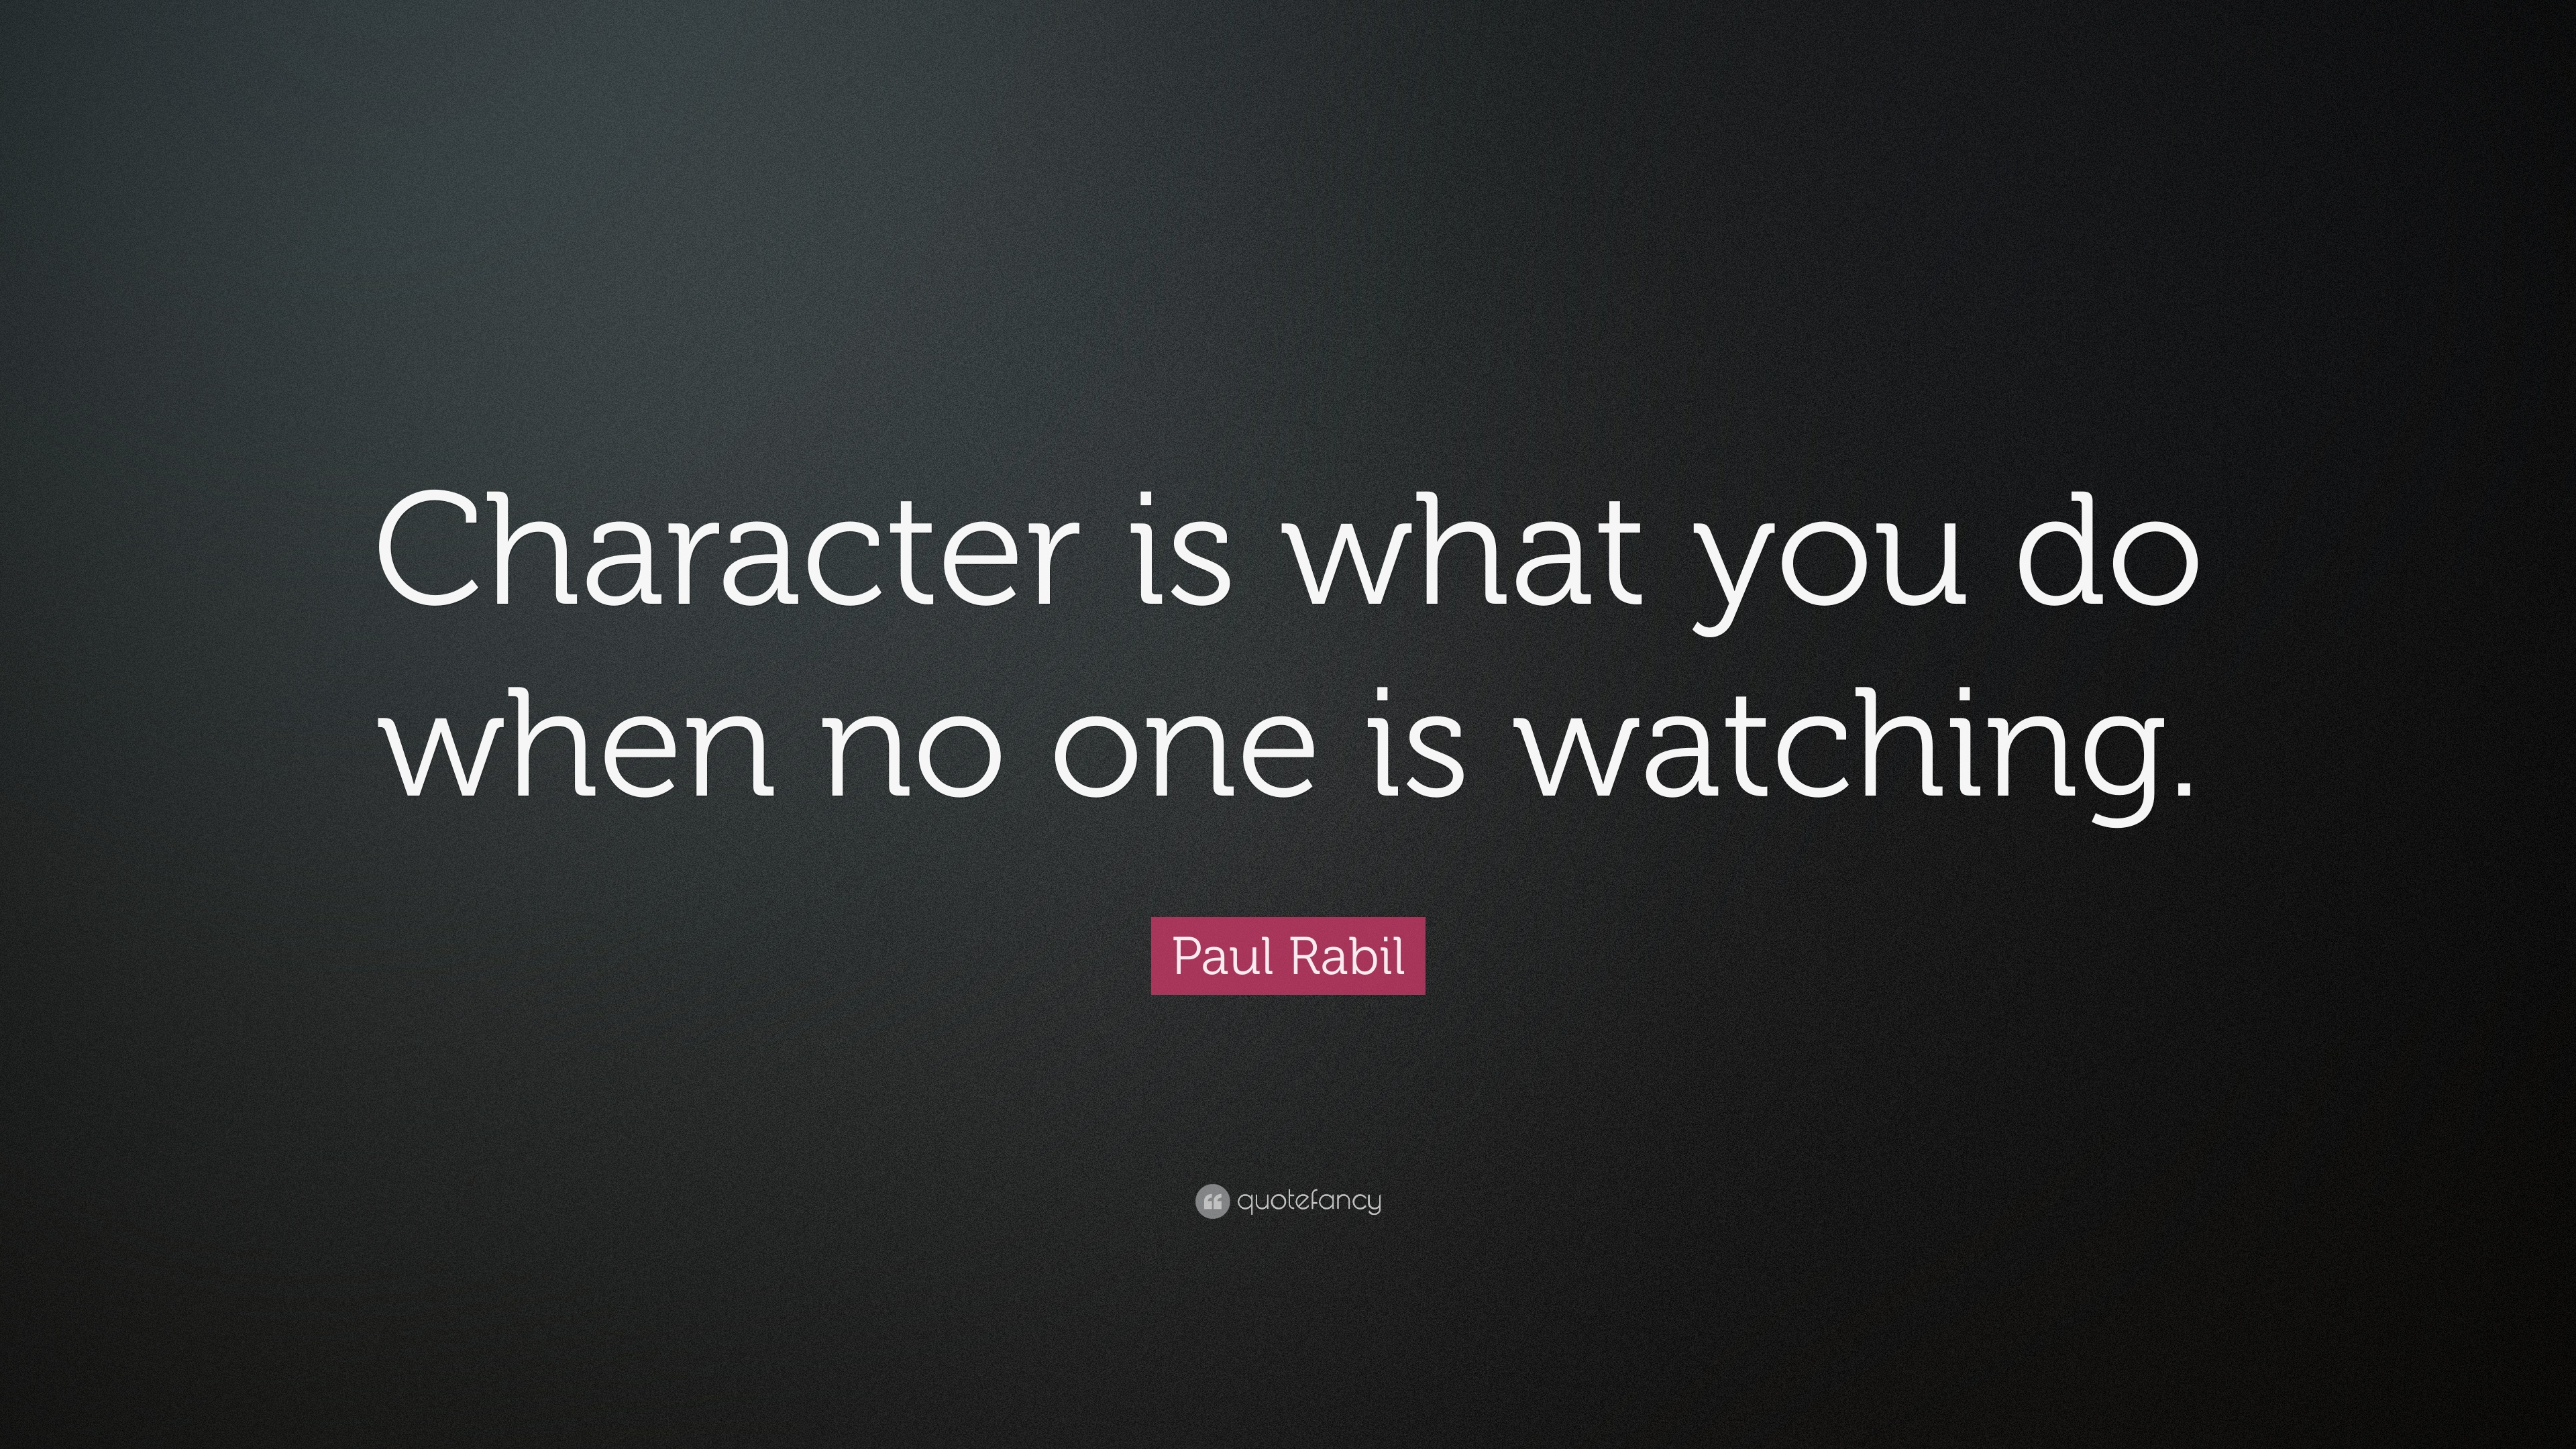 Lacrosse Quotes Paul Rabil Quotes 2 Wallpapers  Quotefancy